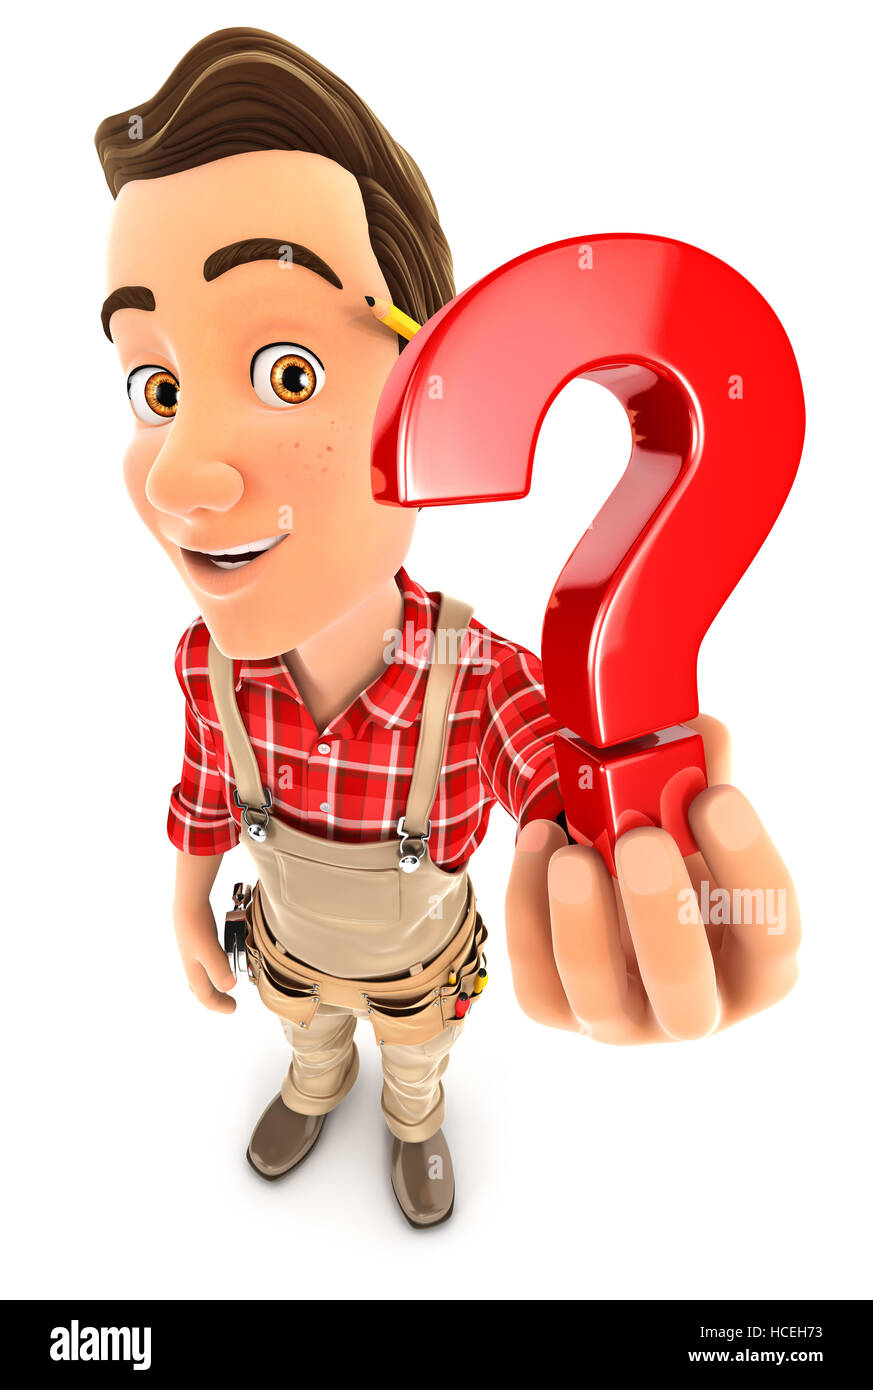 3d handyman holding a question mark icon, illustration with isolated white background Stock Photo